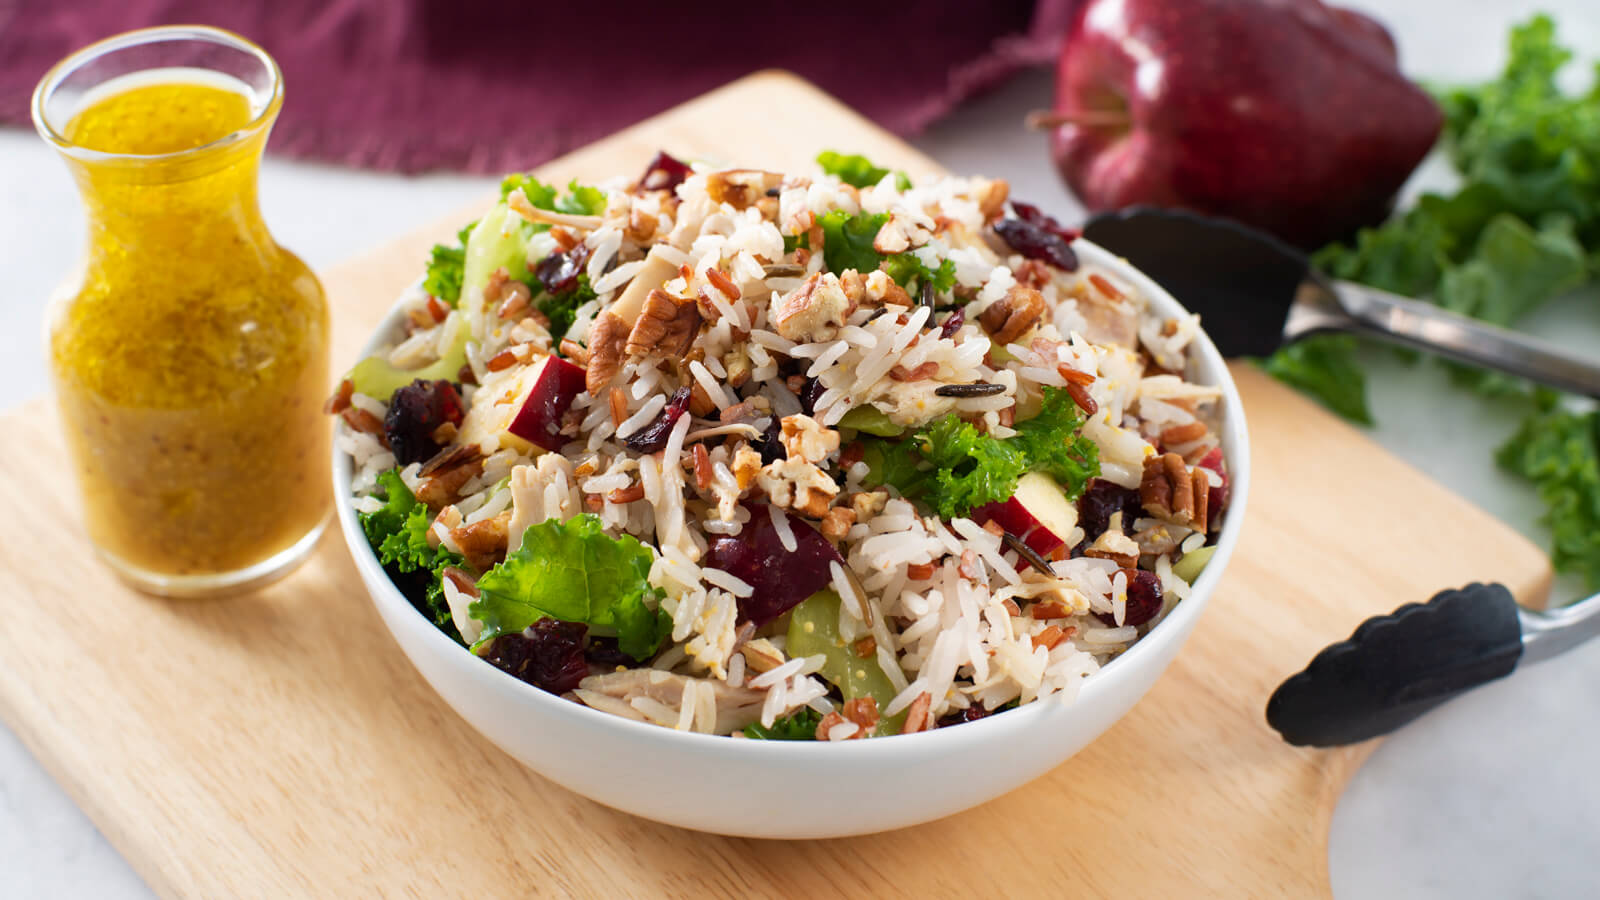 Chicken & Rice Salad with Orange Dressing